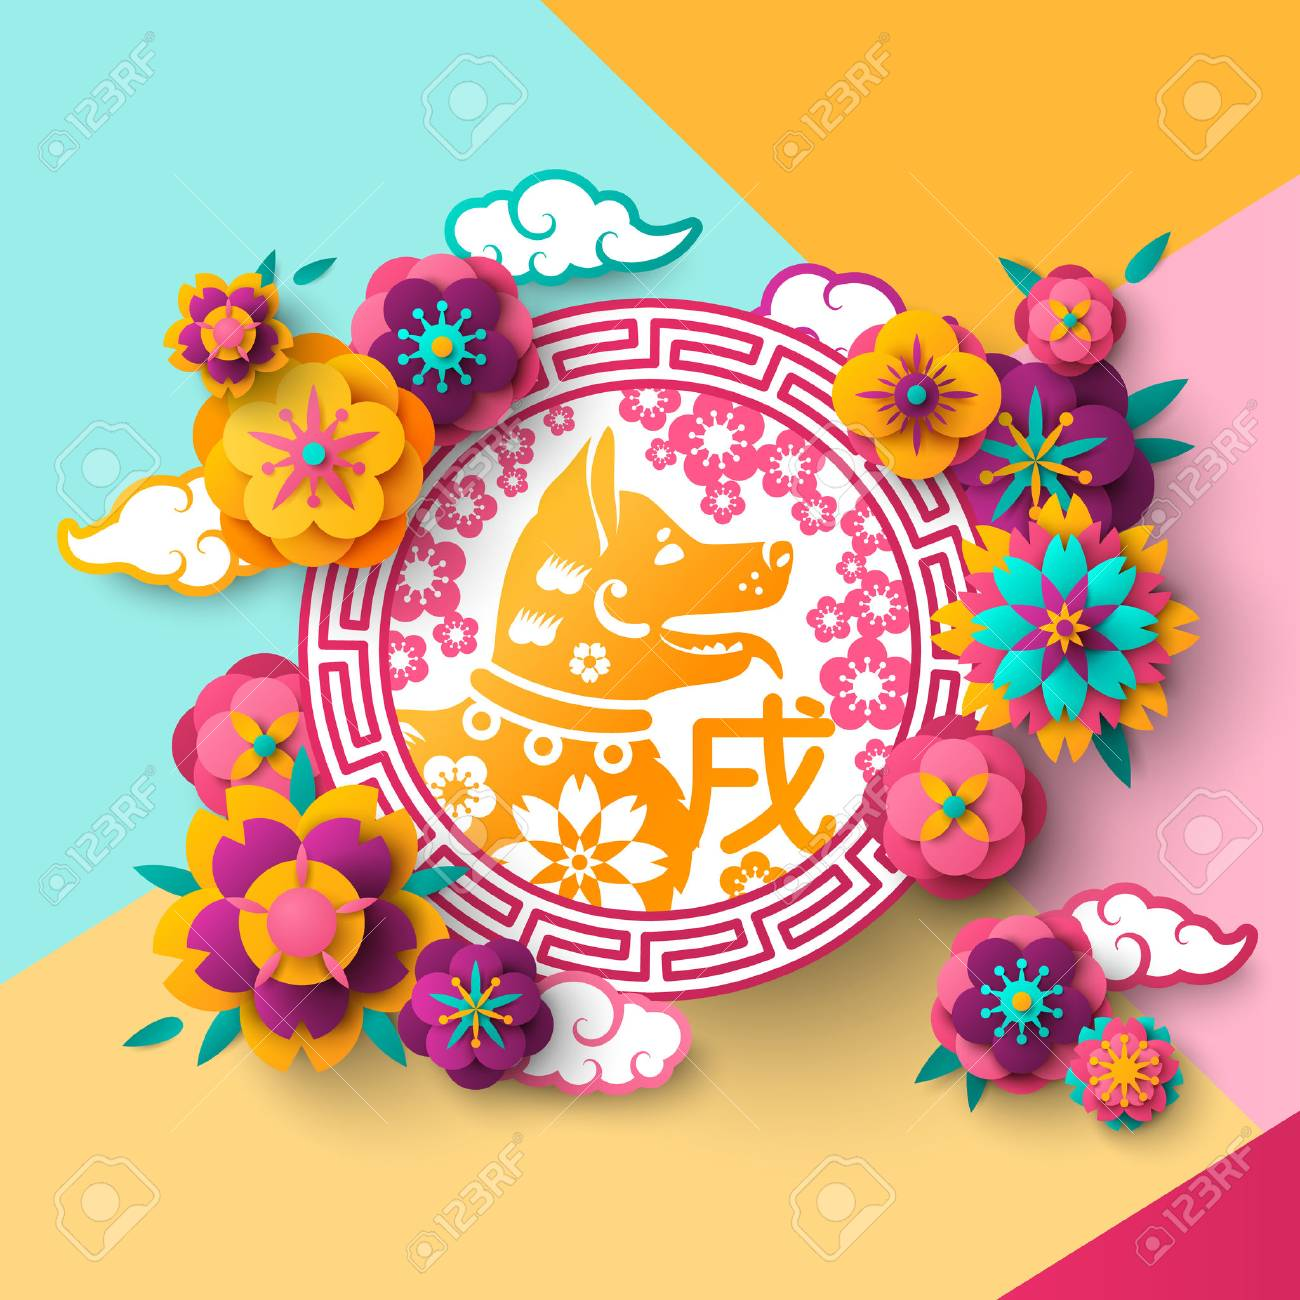 chinese new year greeting card with dog emblem stock vector 89177712